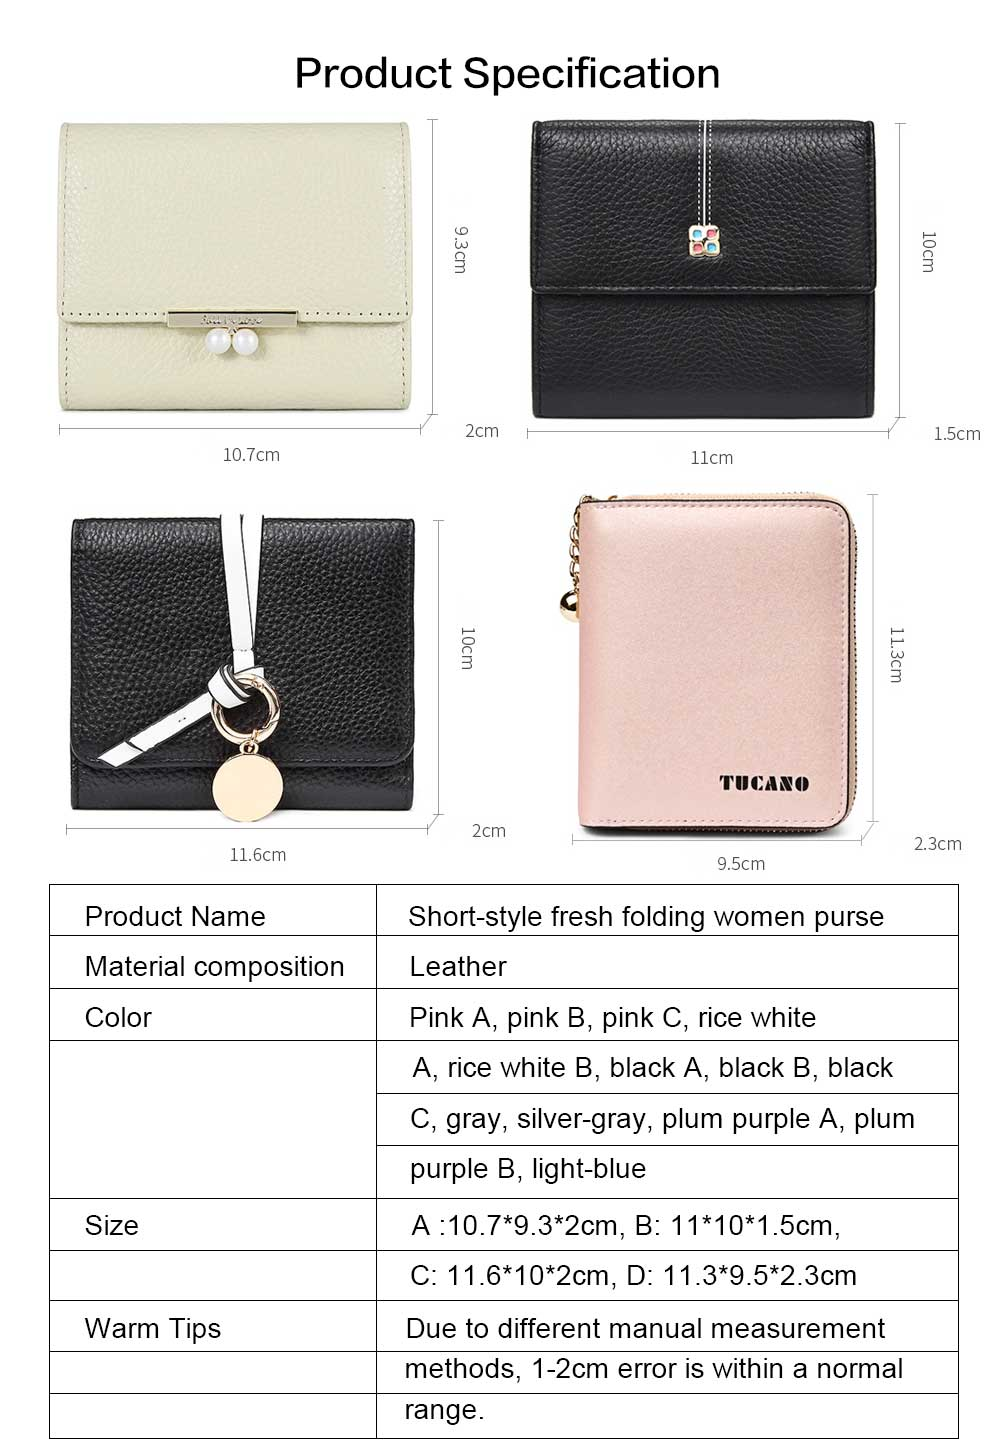 2019 New Designed Women Purse New Designed INS Purse Short-style Fresh Folding Purse for Women Lady Girl 6